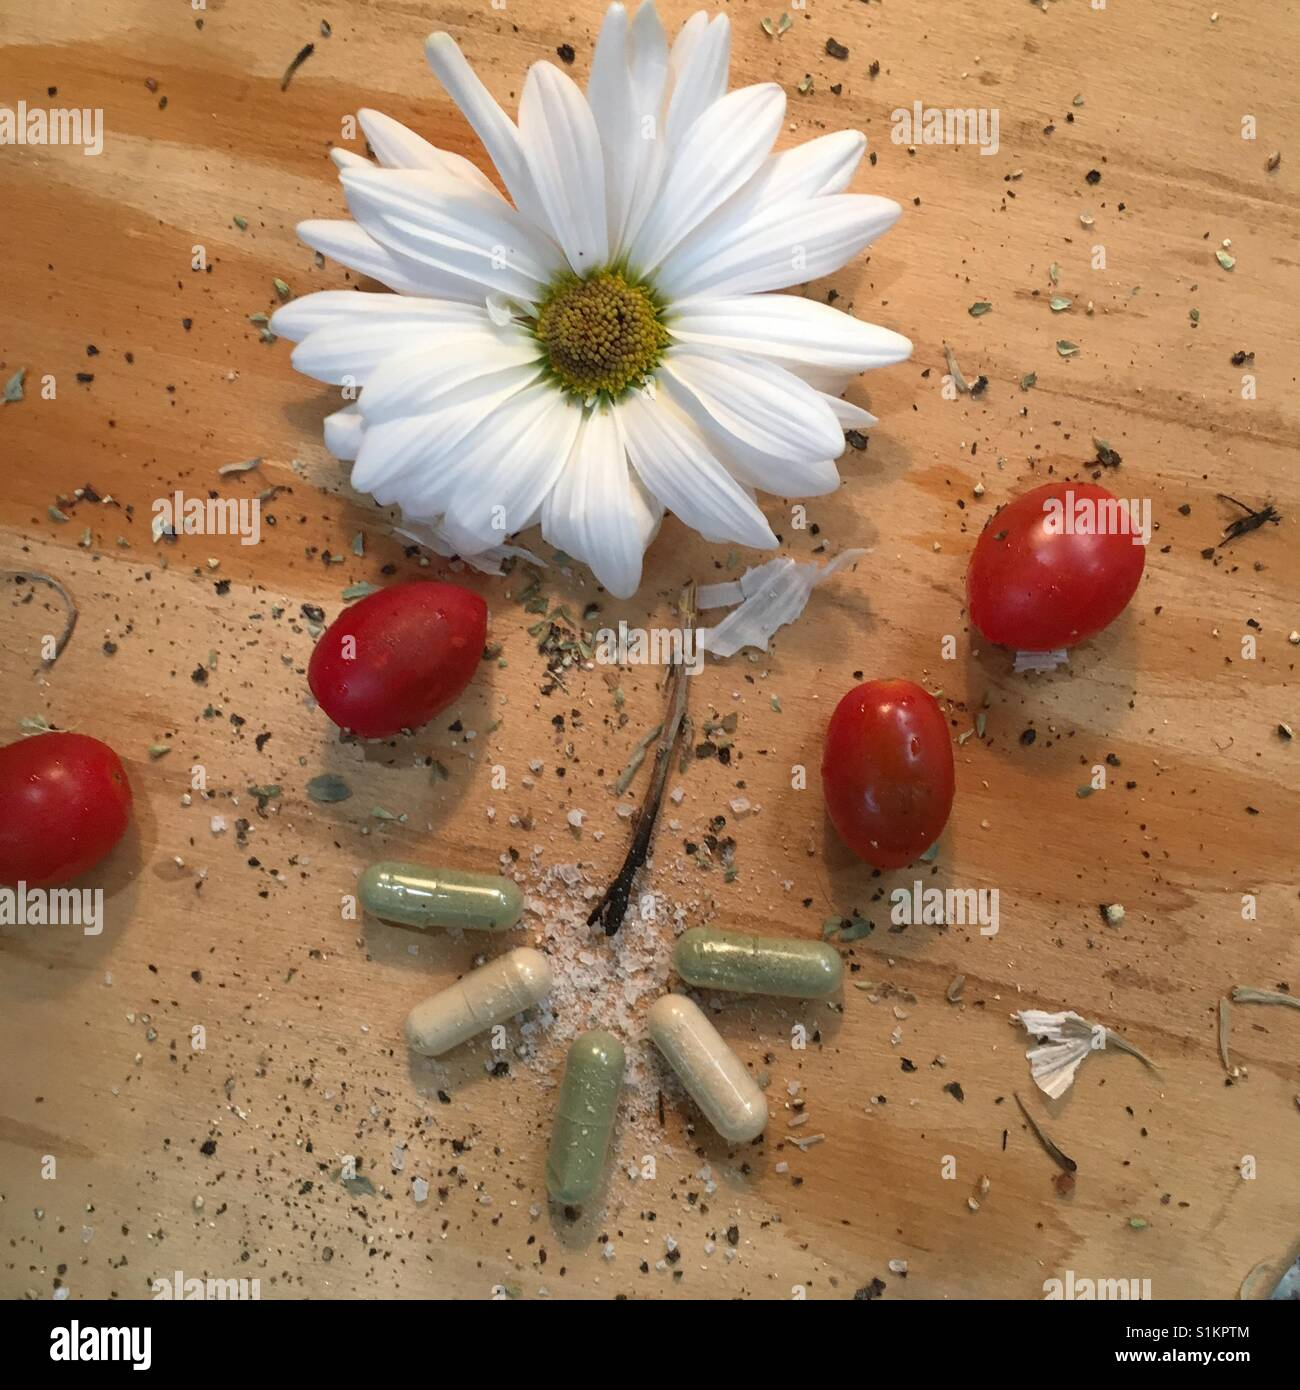 Artistic Herbal supplement capsules-- supplements breaking out of the pill box - Stock Image